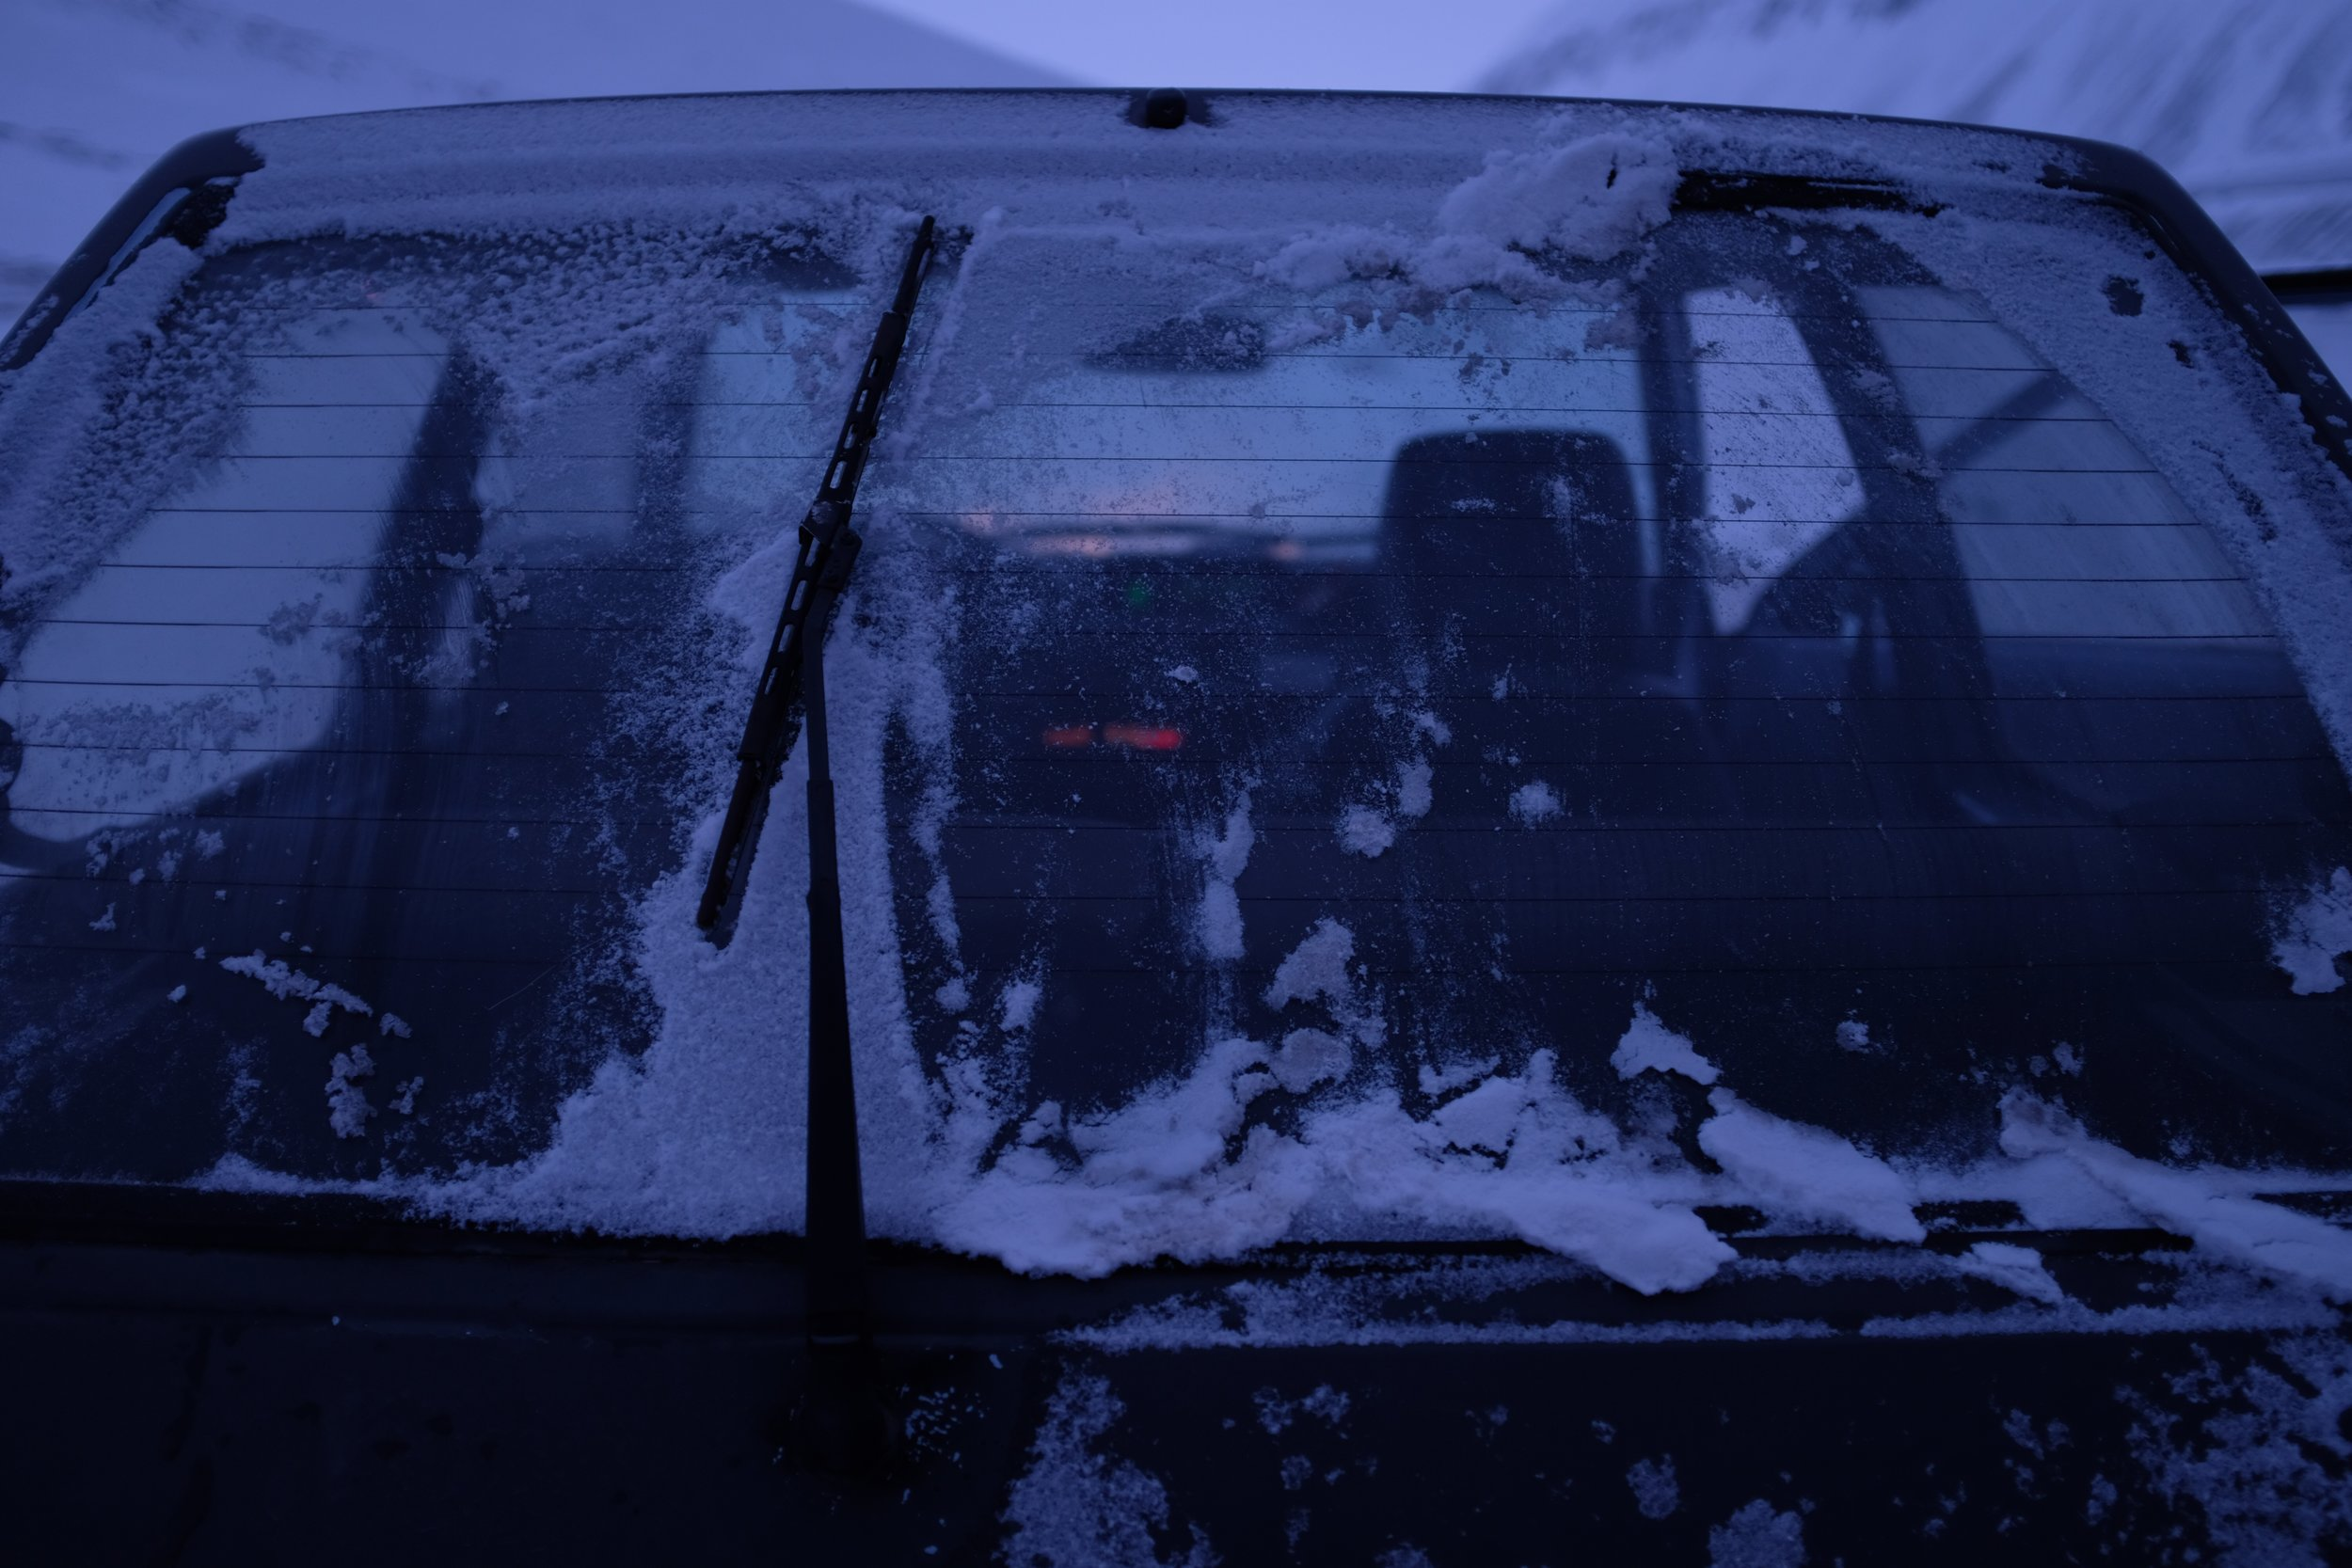 An Ode to a $200 Car - A photo series of the Toyota Starlet that carried us through Longyearbyen